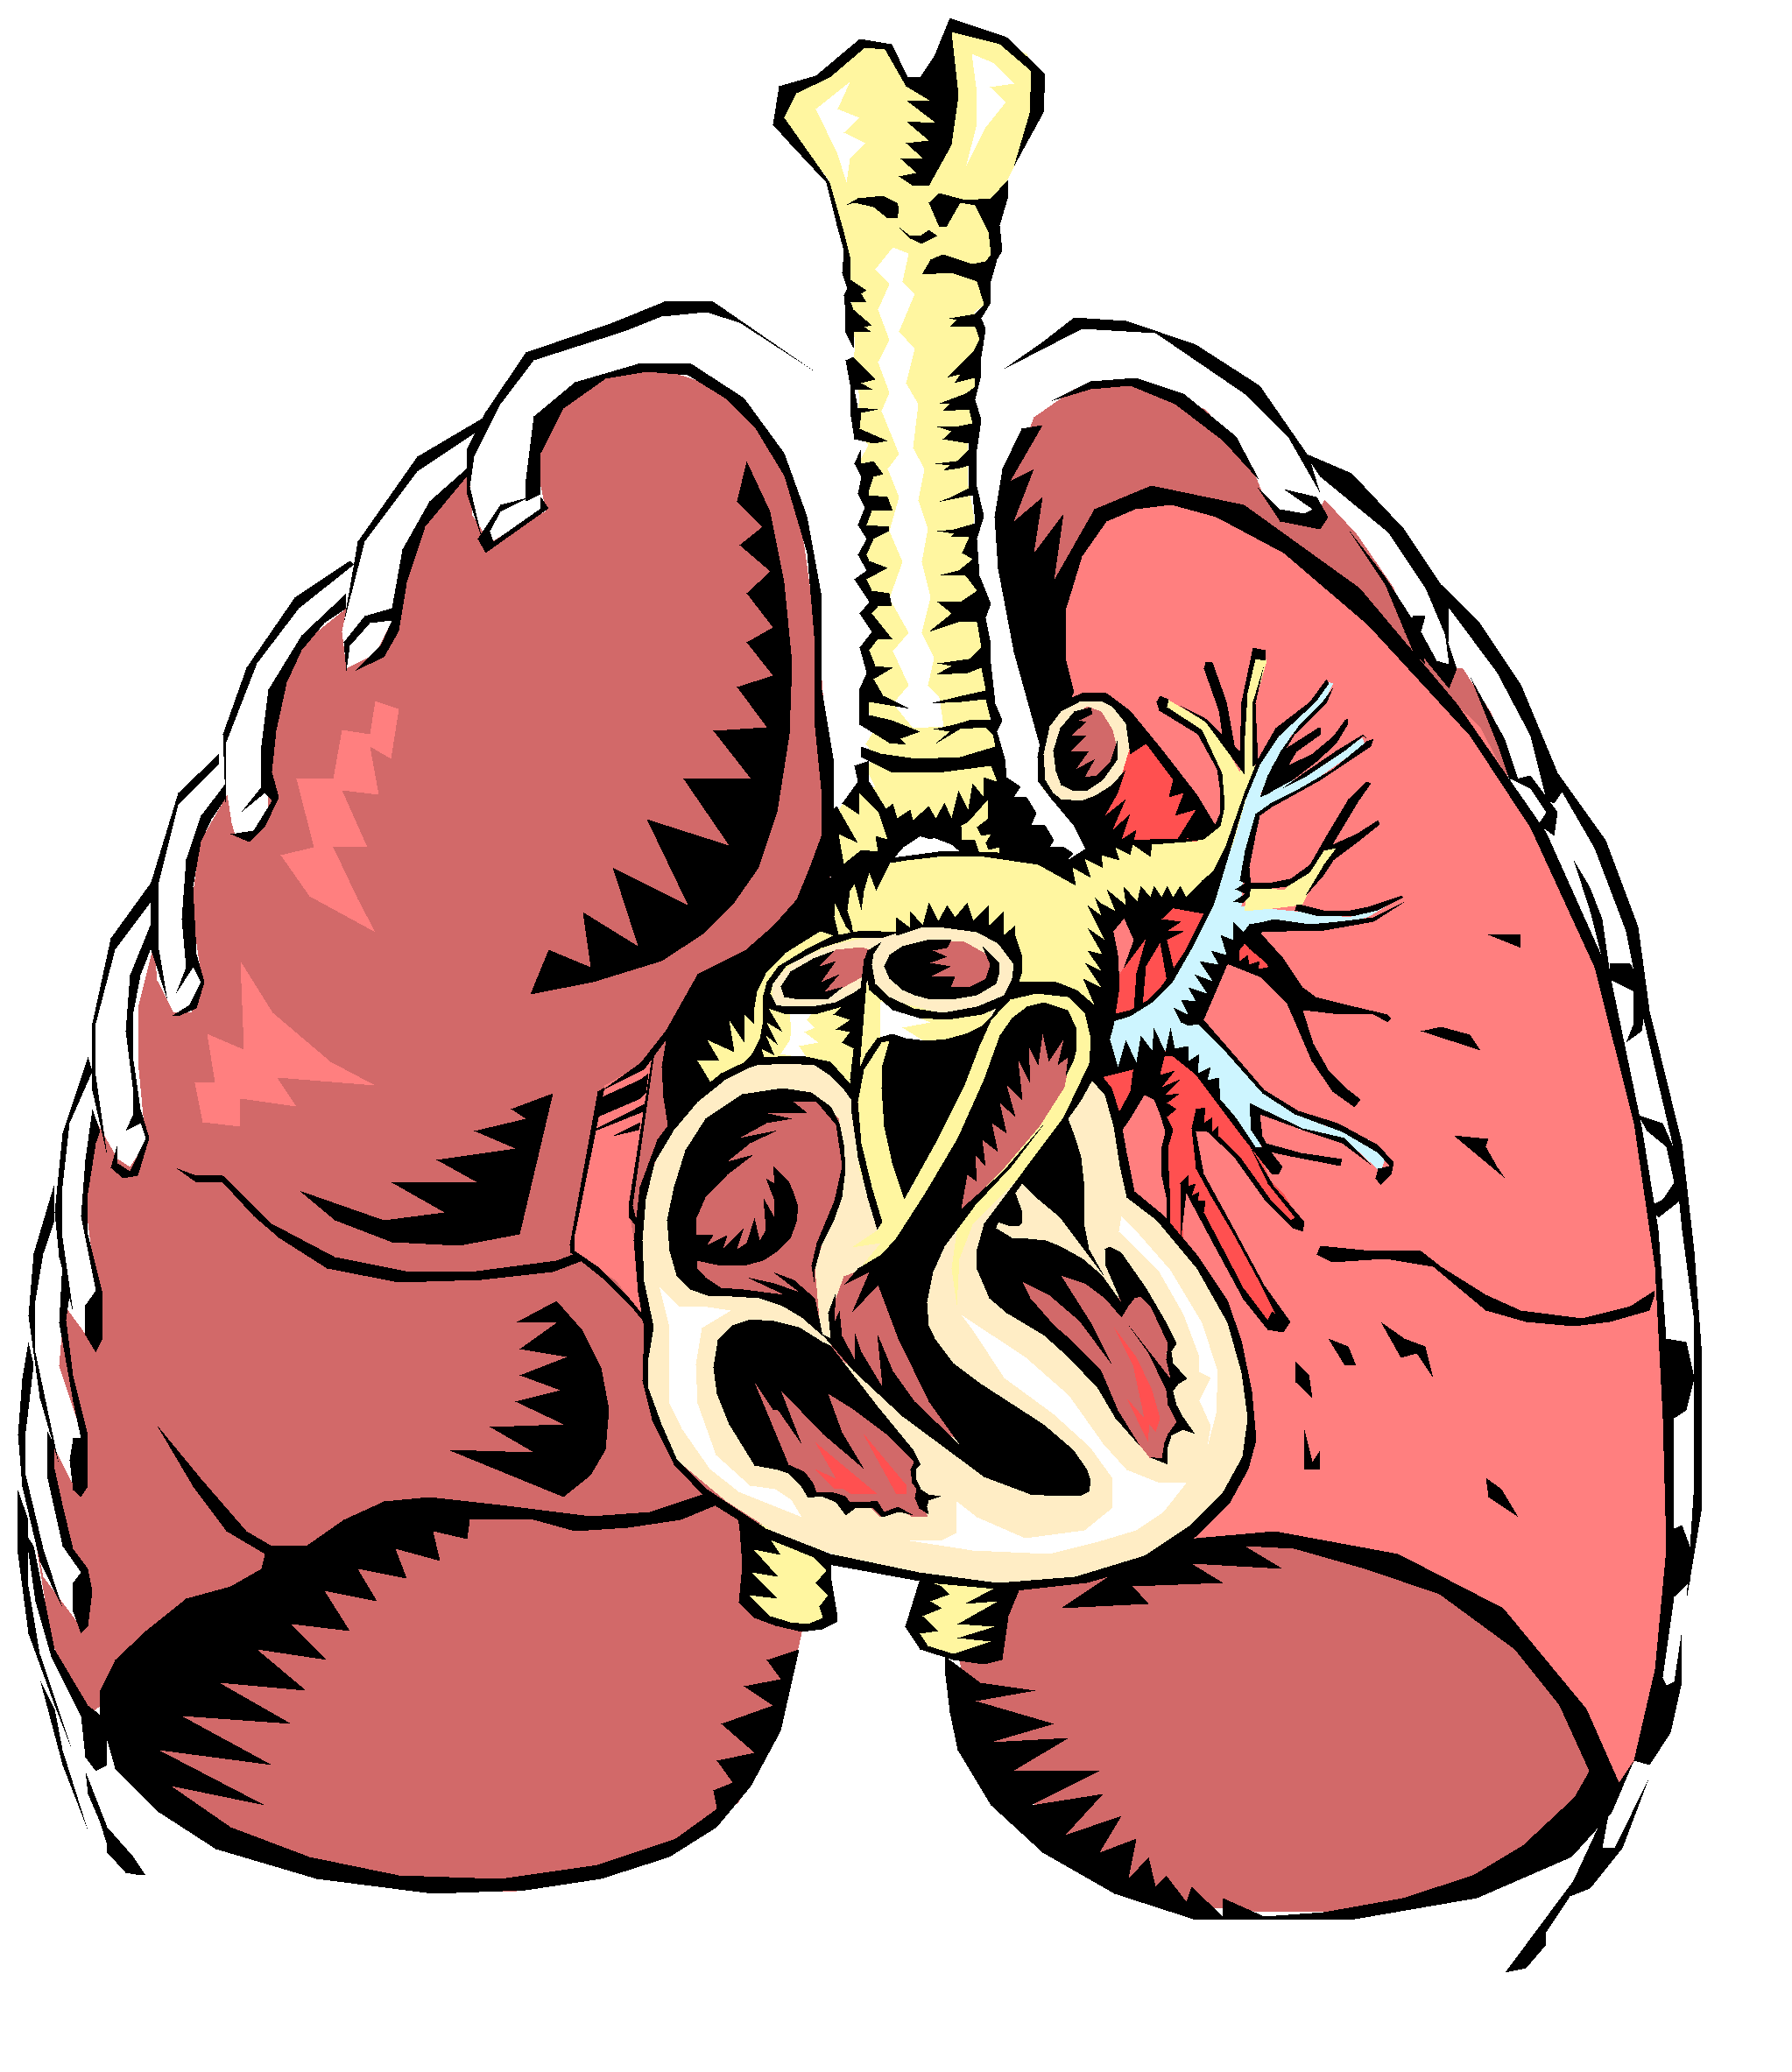 banner royalty free download System drawing at getdrawings. Biology clipart respiratory disease